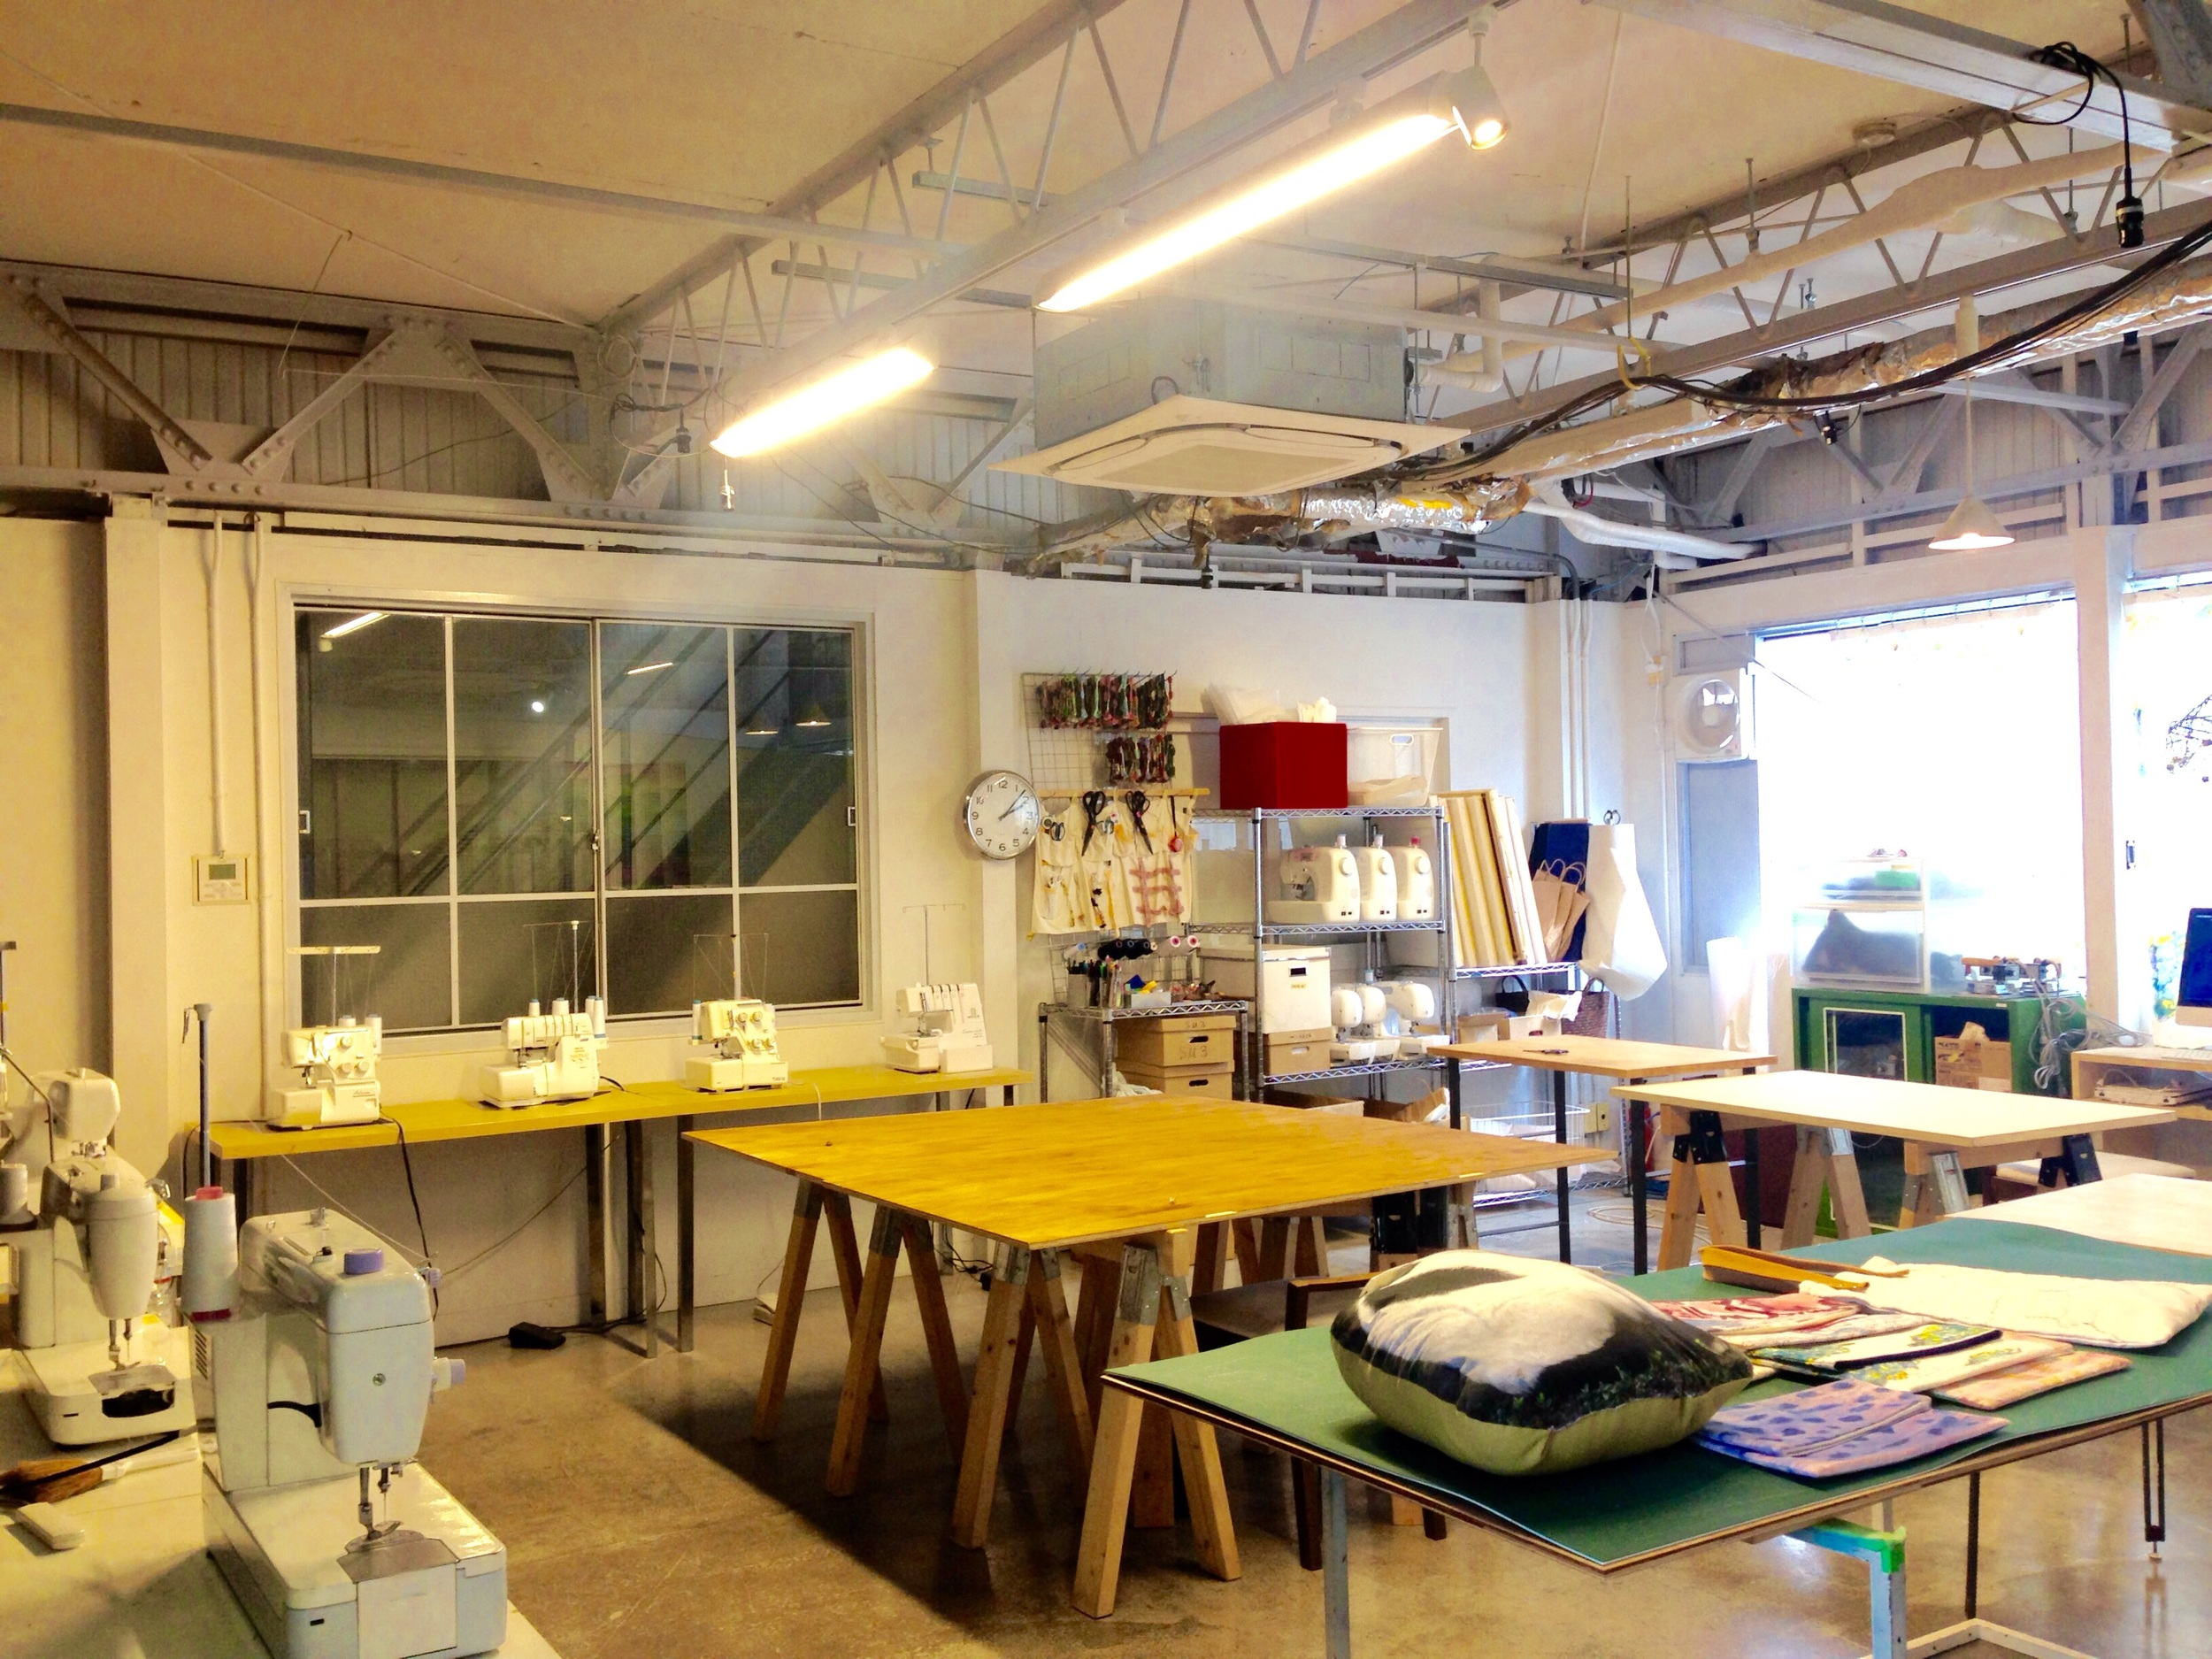 Fabric workspace with sewing and embroidery and fabric printing machines